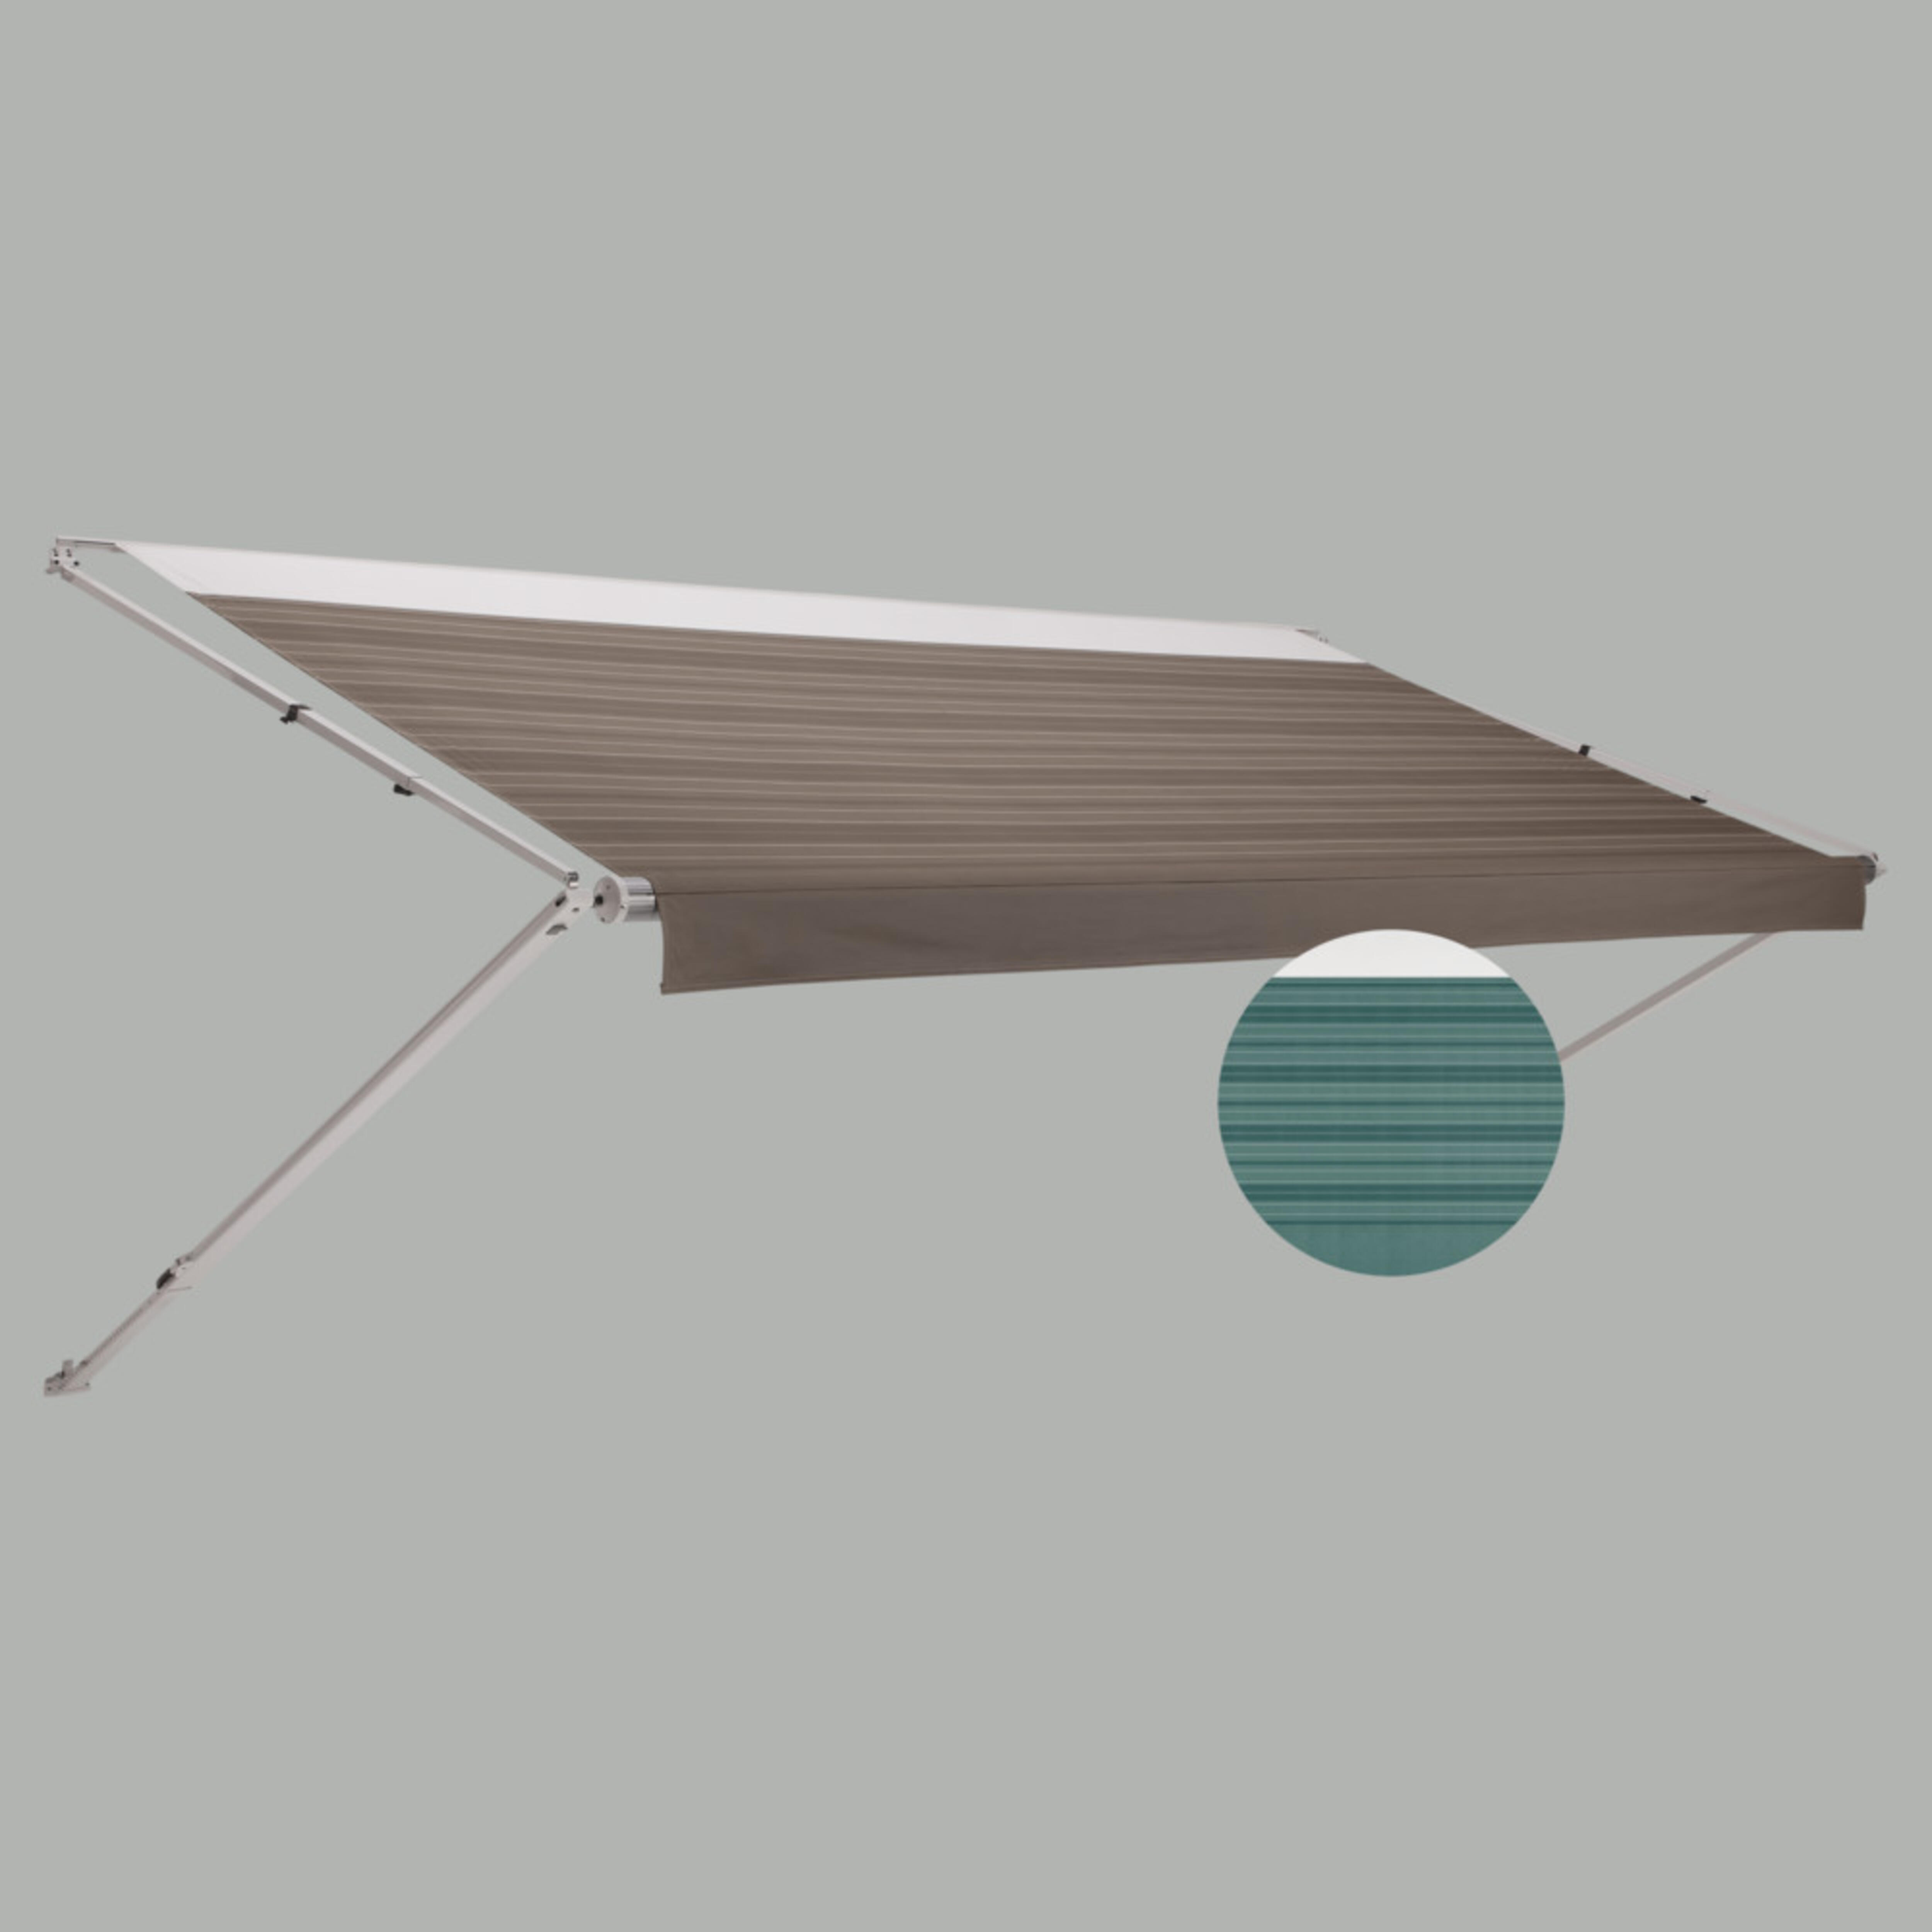 Dometic Sunchaser Geared Awning